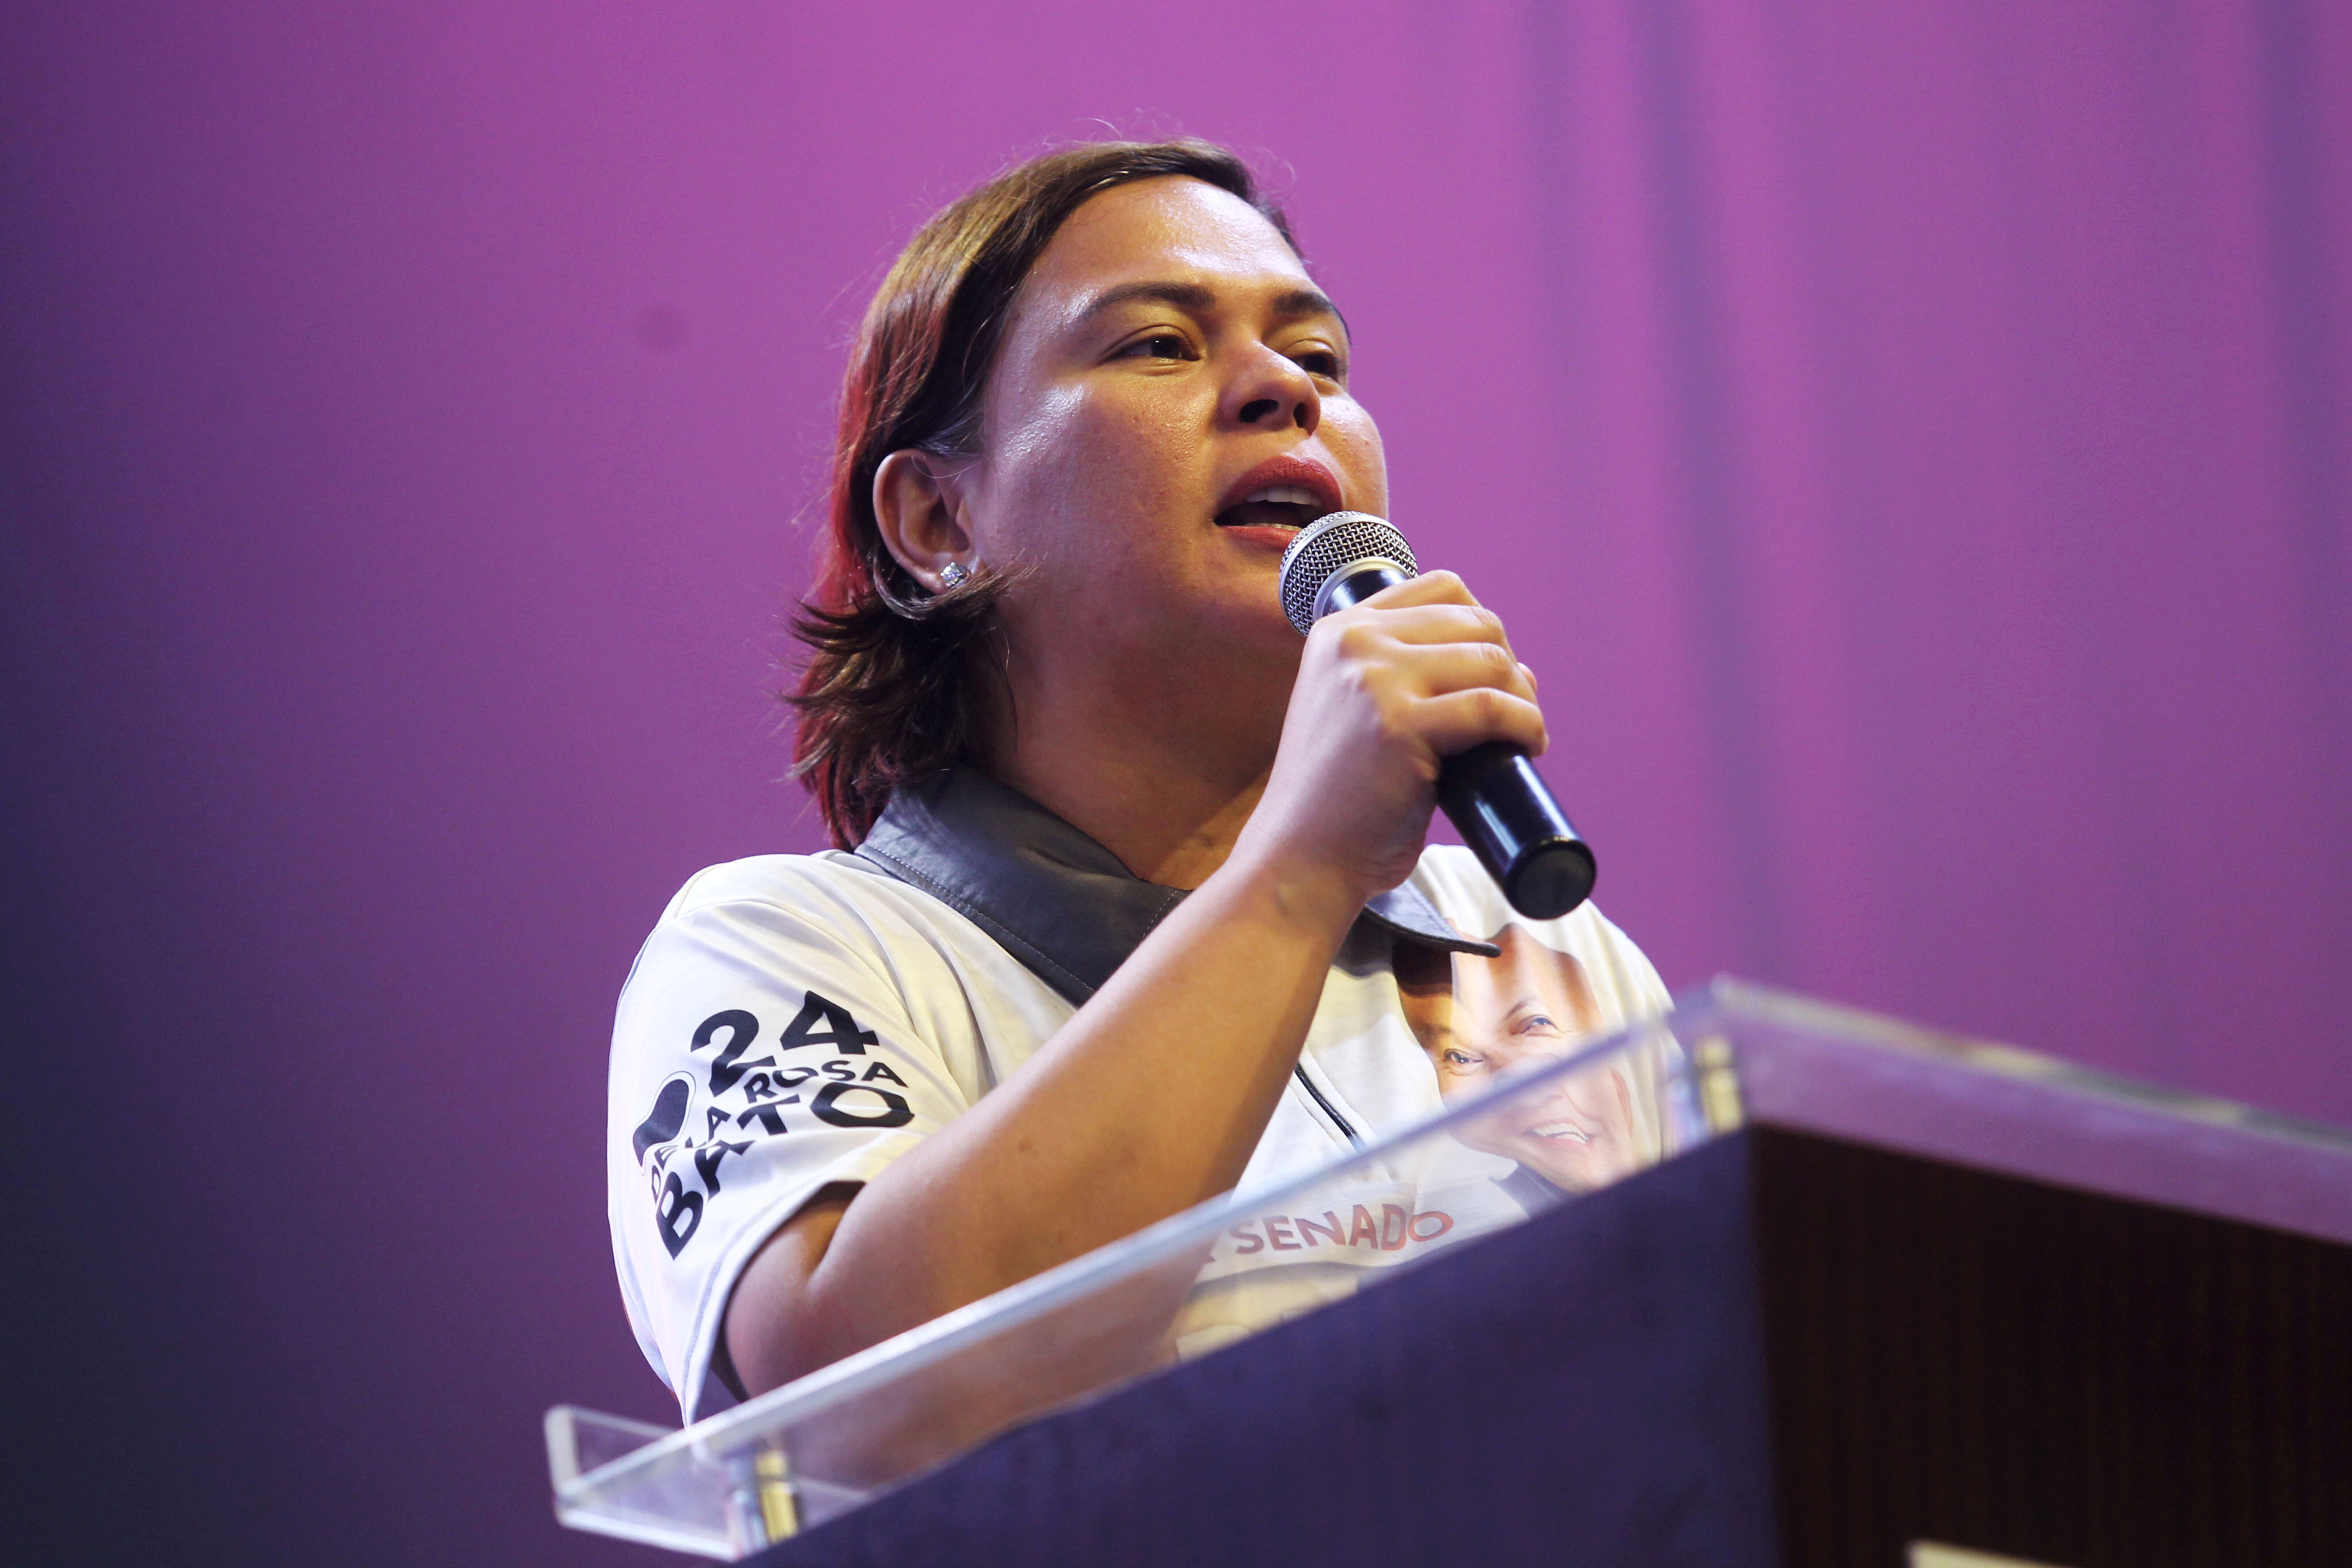 Sara Duterte-Carpio, Davao City Mayor and daughter of Philippine President Rodrigo Duterte, delivers a speech during a senatorial campaign caravan for Hugpong Ng Pagbabago (HNP) in Davao City, southern Philippines on May 9, 2019. HNP is a regional political party chaired by Sara Duterte. REUTERS/Lean Daval Jr